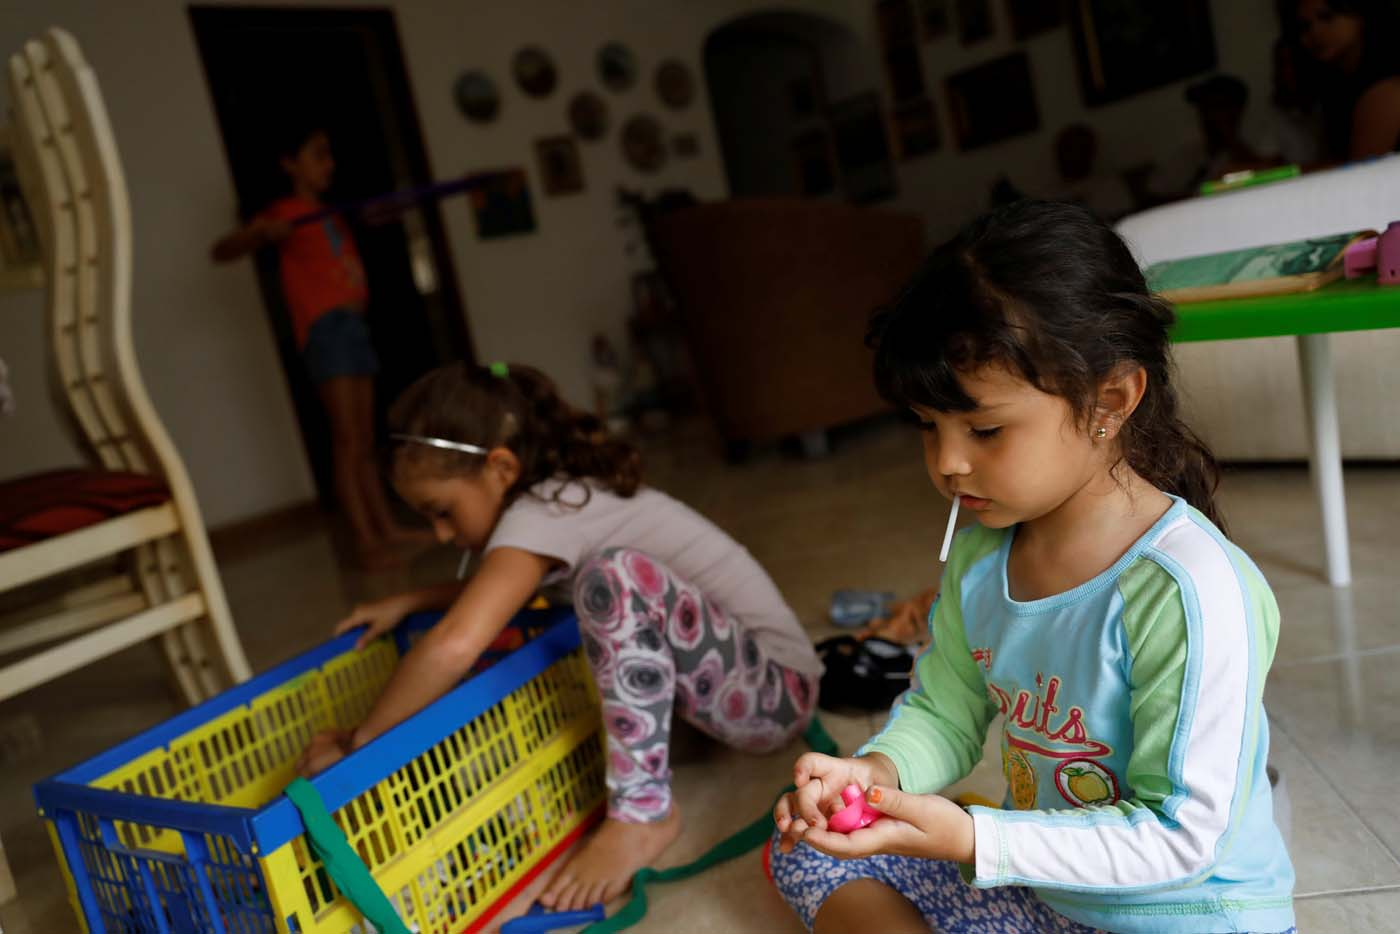 Renata Bonilla (R), plays with her cousins at their grandmother's house on a day of protests in Caracas, Venezuela June 14, 2017. Picture taken June 14, 2017. REUTERS/Carlos Garcia Rawlins